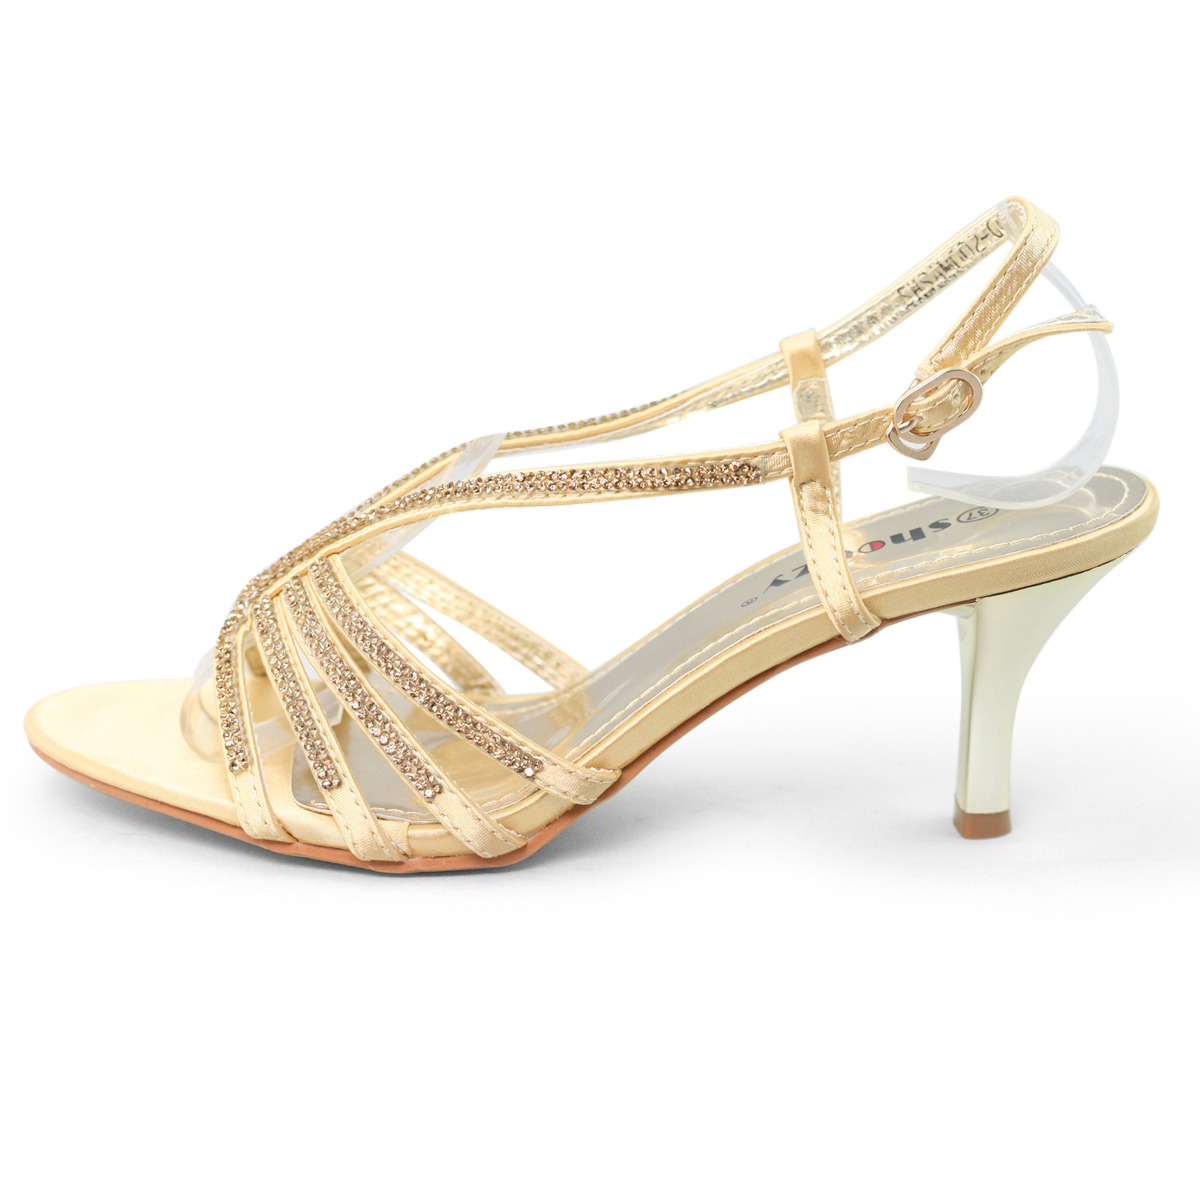 Womens rhinestone mid heel sandals silver gold wedding for Gold dress shoes for wedding